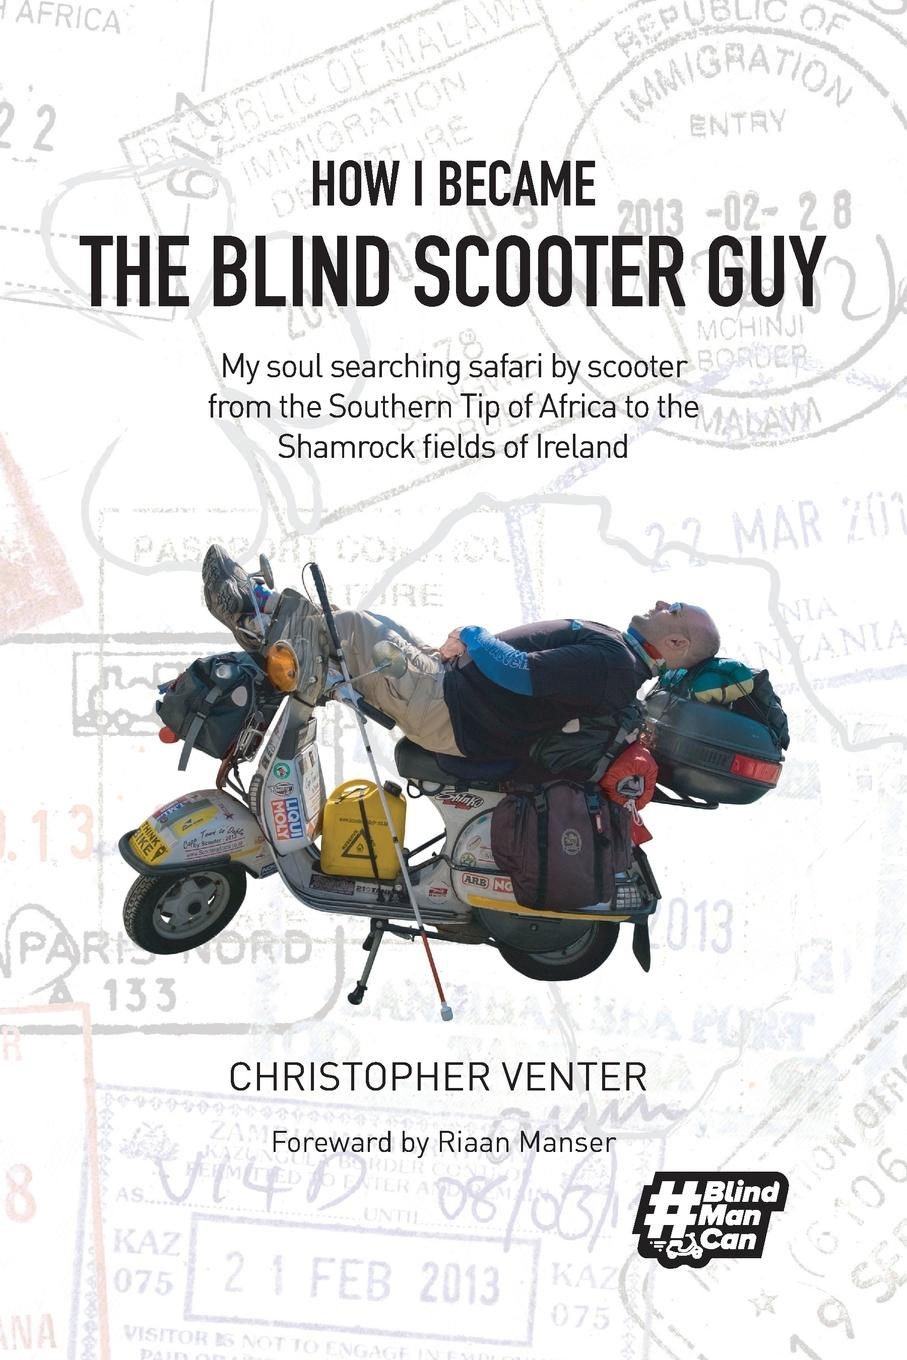 Christopher Venter How I Became The Blind Scooter Guy. My soul searching safari by scooter from the Southern Tip of Africa to the Shamrock fields of Ireland